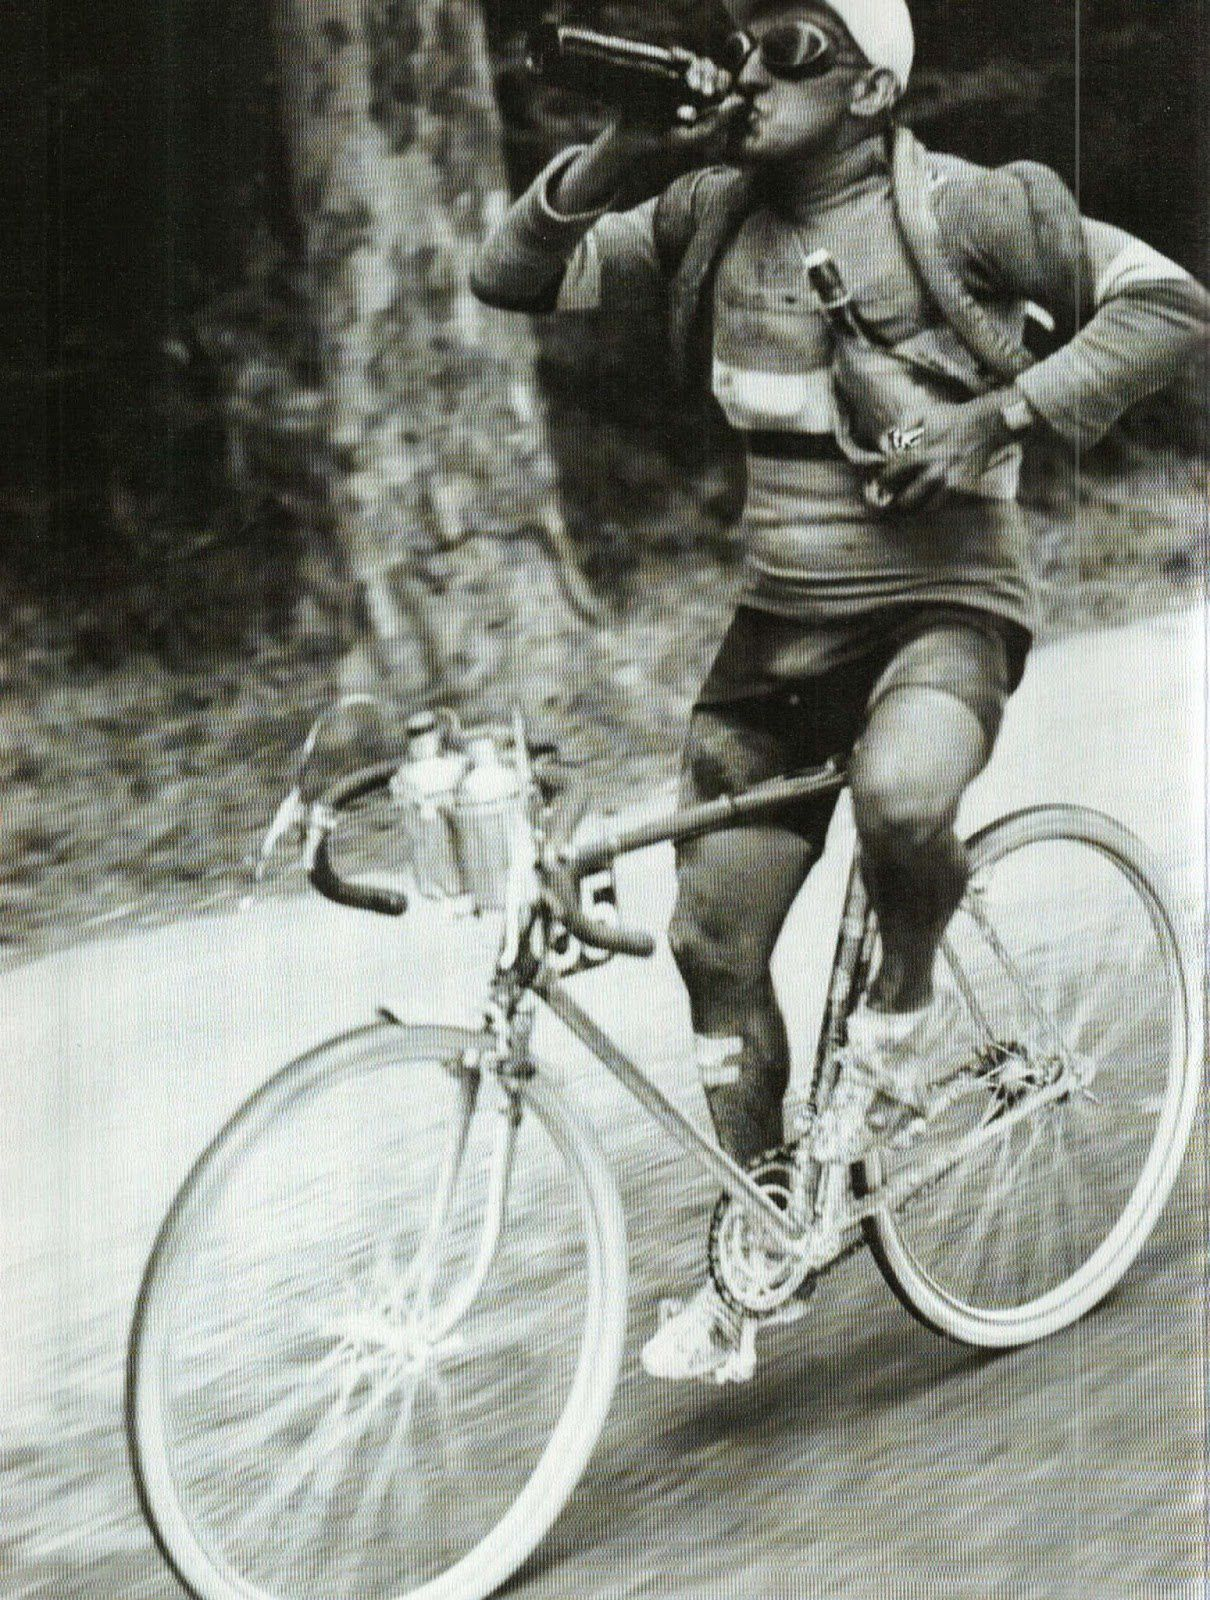 Jules Merviel from France having a drink during 1930 Tour.